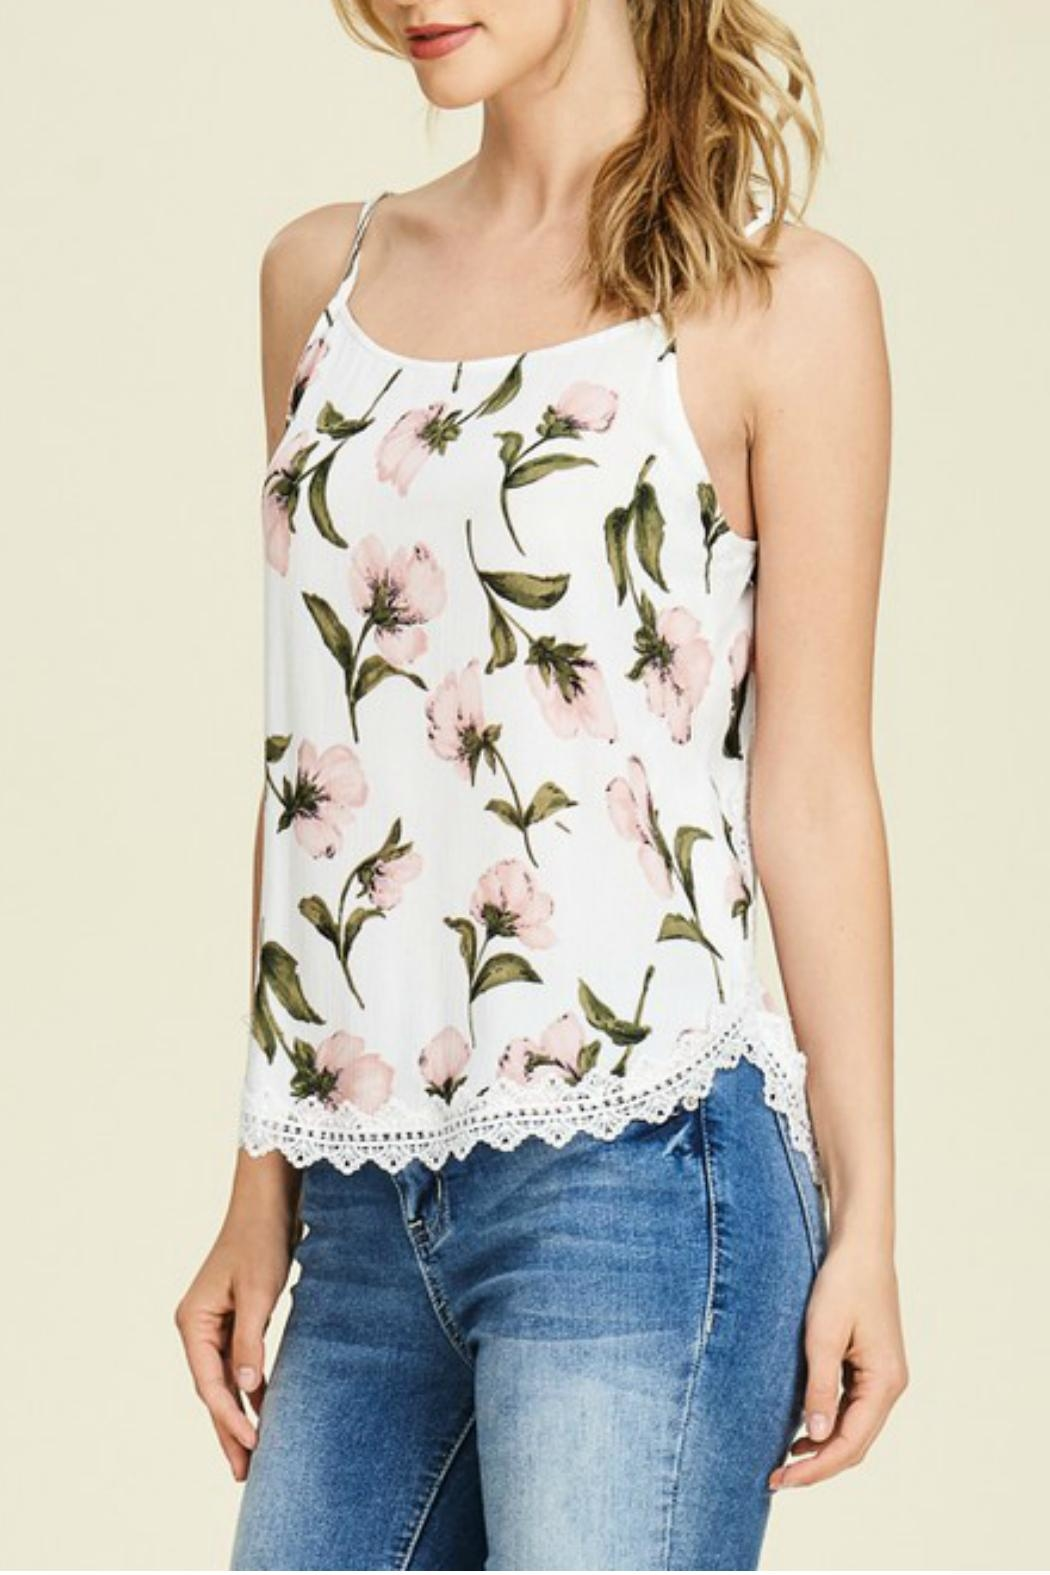 Staccato Floral Camisole - Main Image